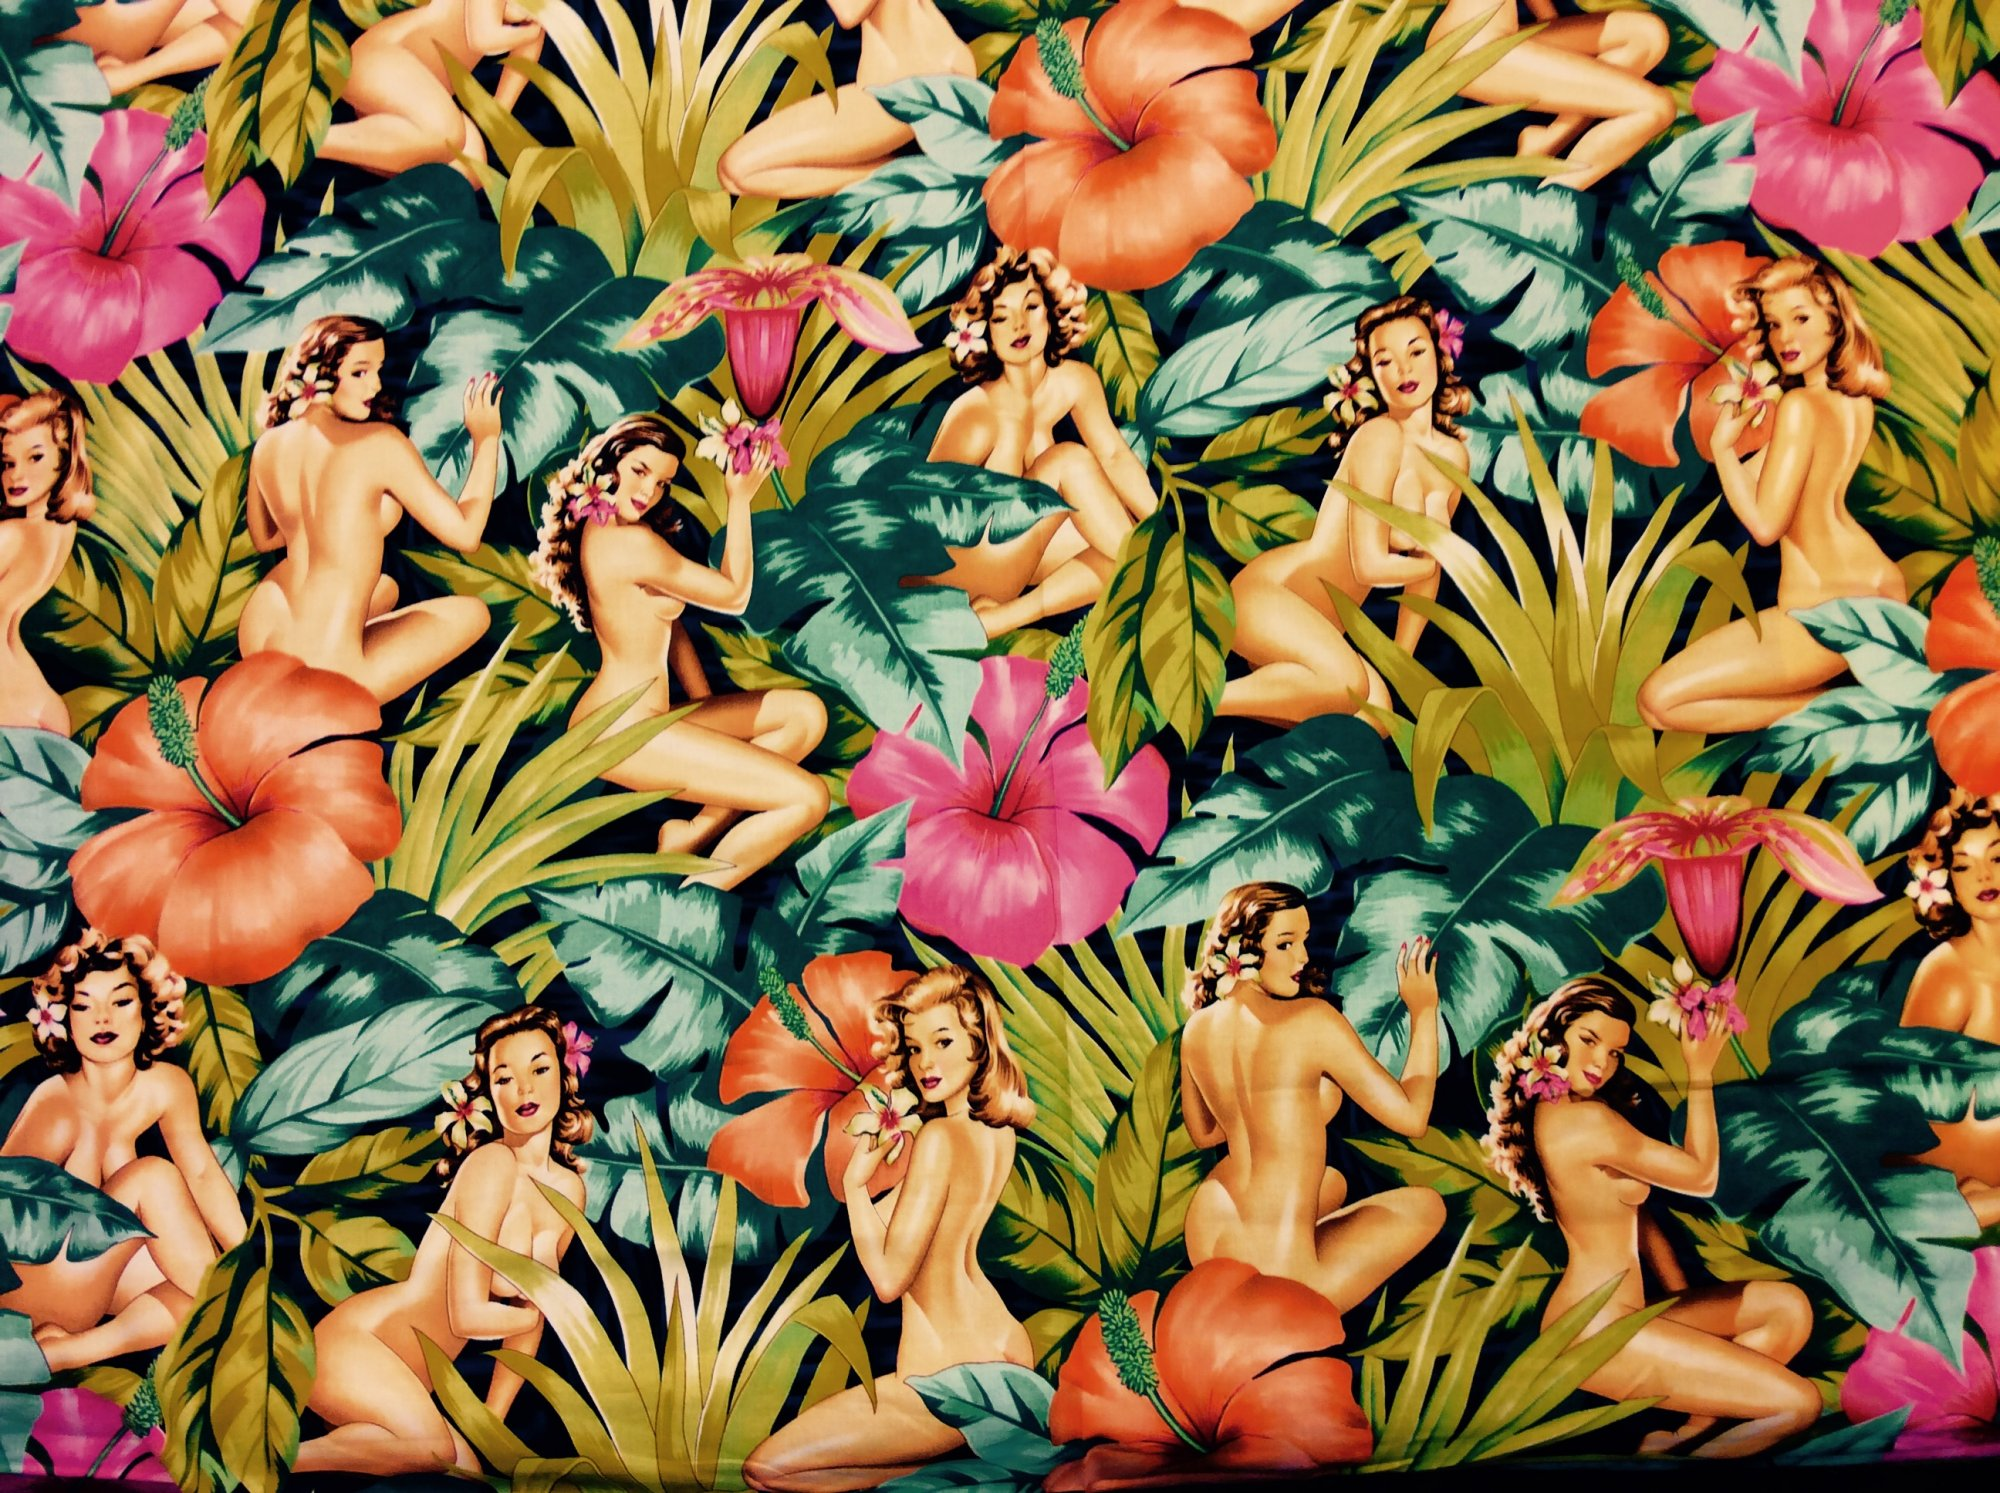 Sexy Pin Up Girls Mirage Retro Girls Hula Hawaii Surf Hibiscus Tropical Leaves Orchids Cotton Fabric Quilt Fabric T08